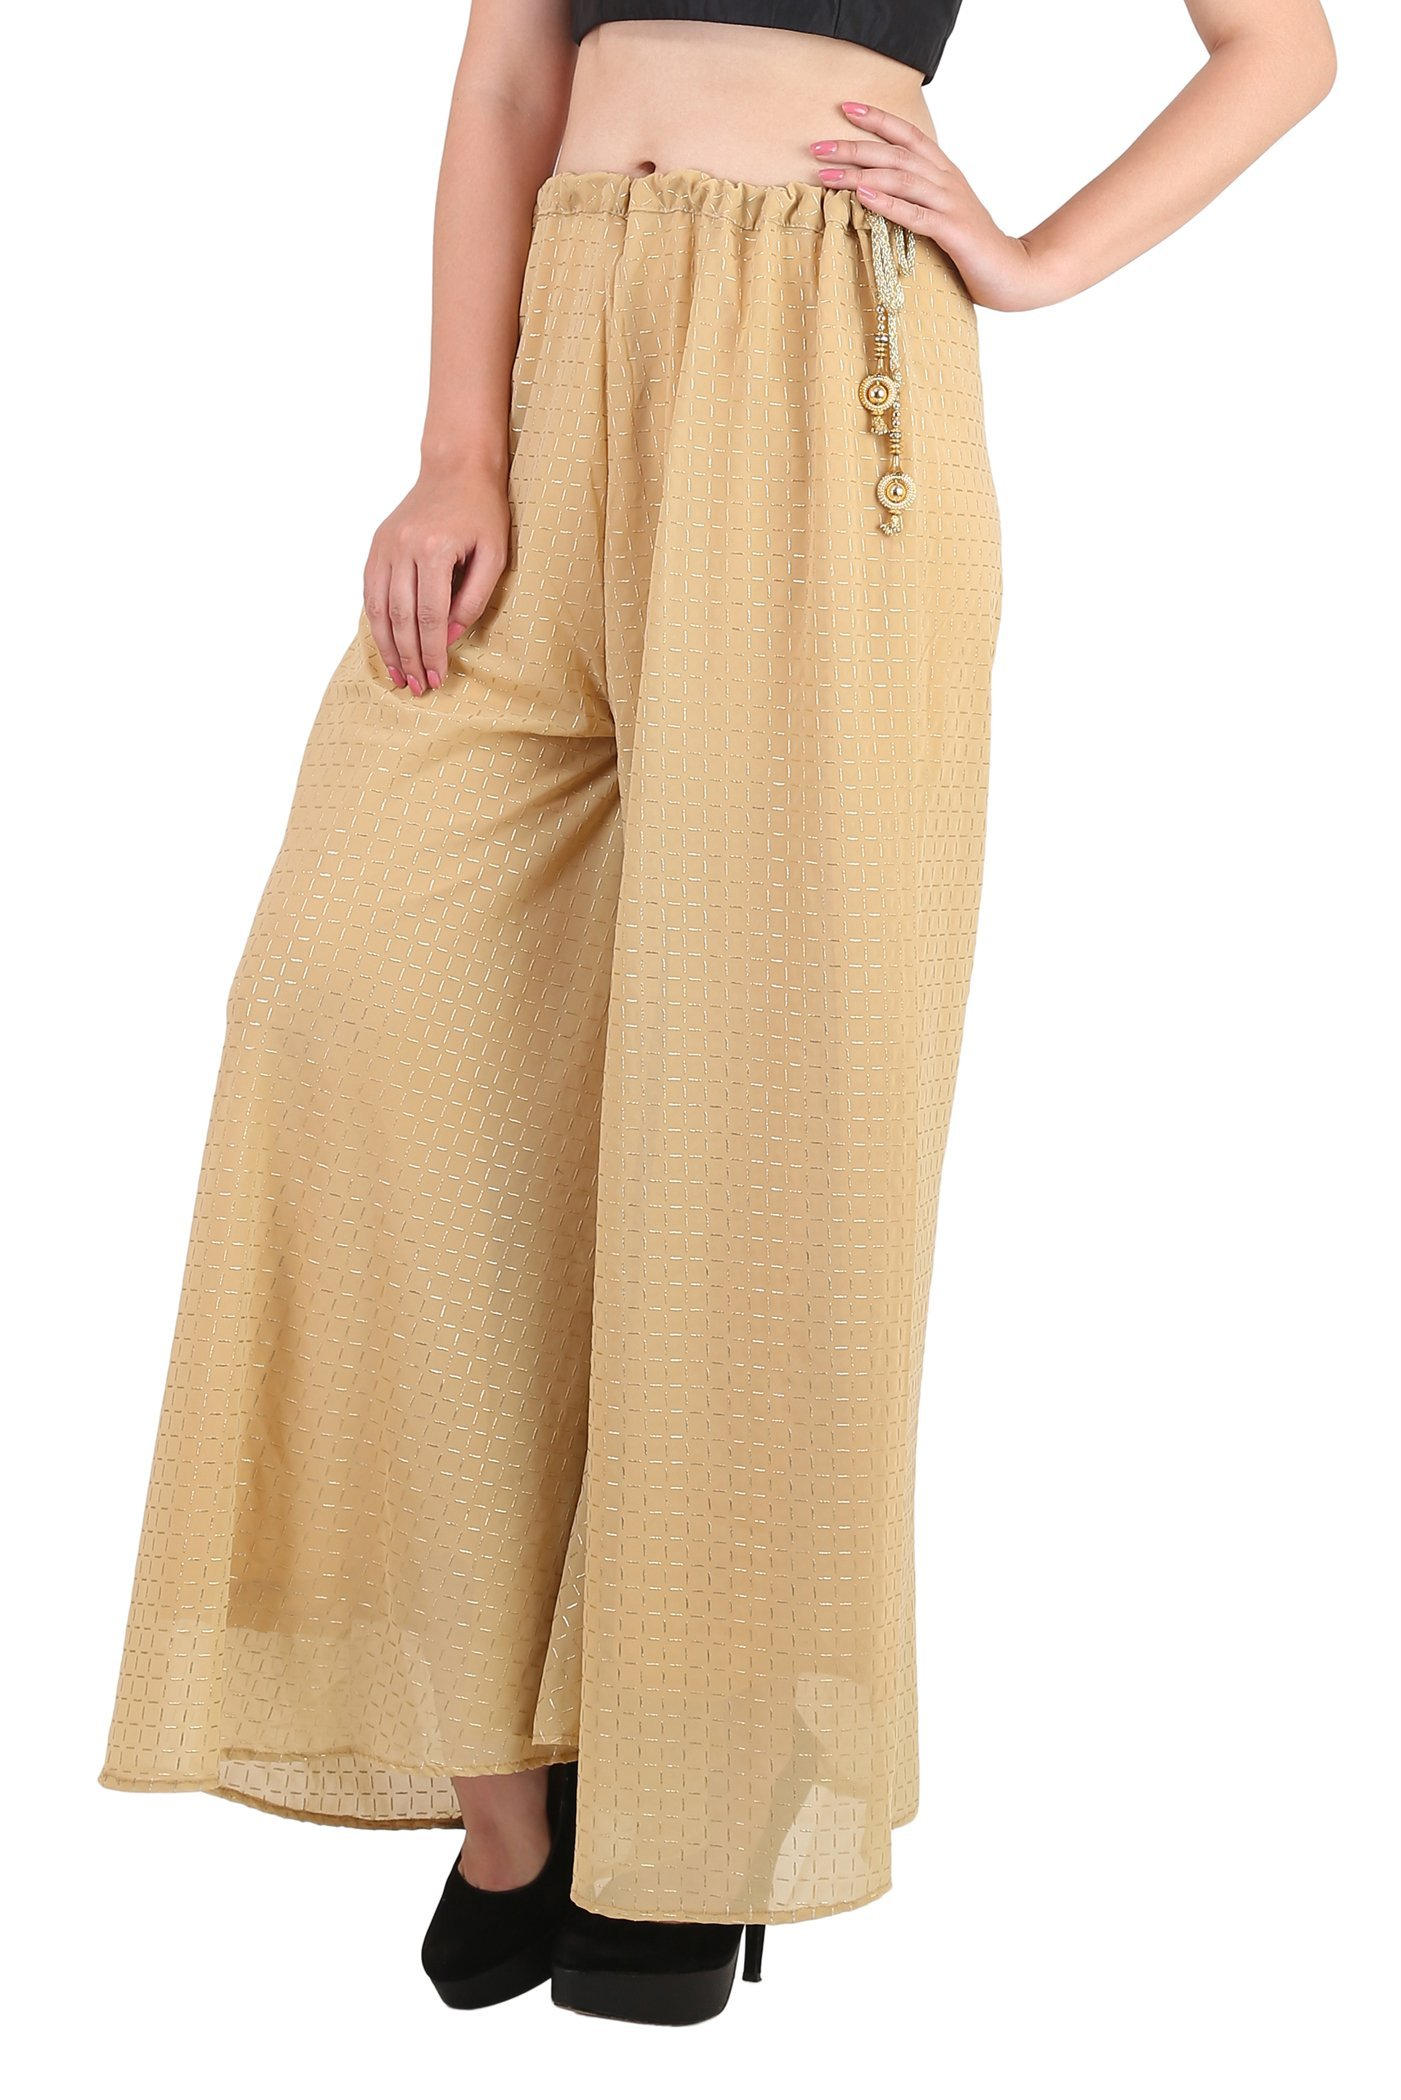 Shararat Women's Palazzo Pants Georgette Checks Print Loose High Waist Trouser